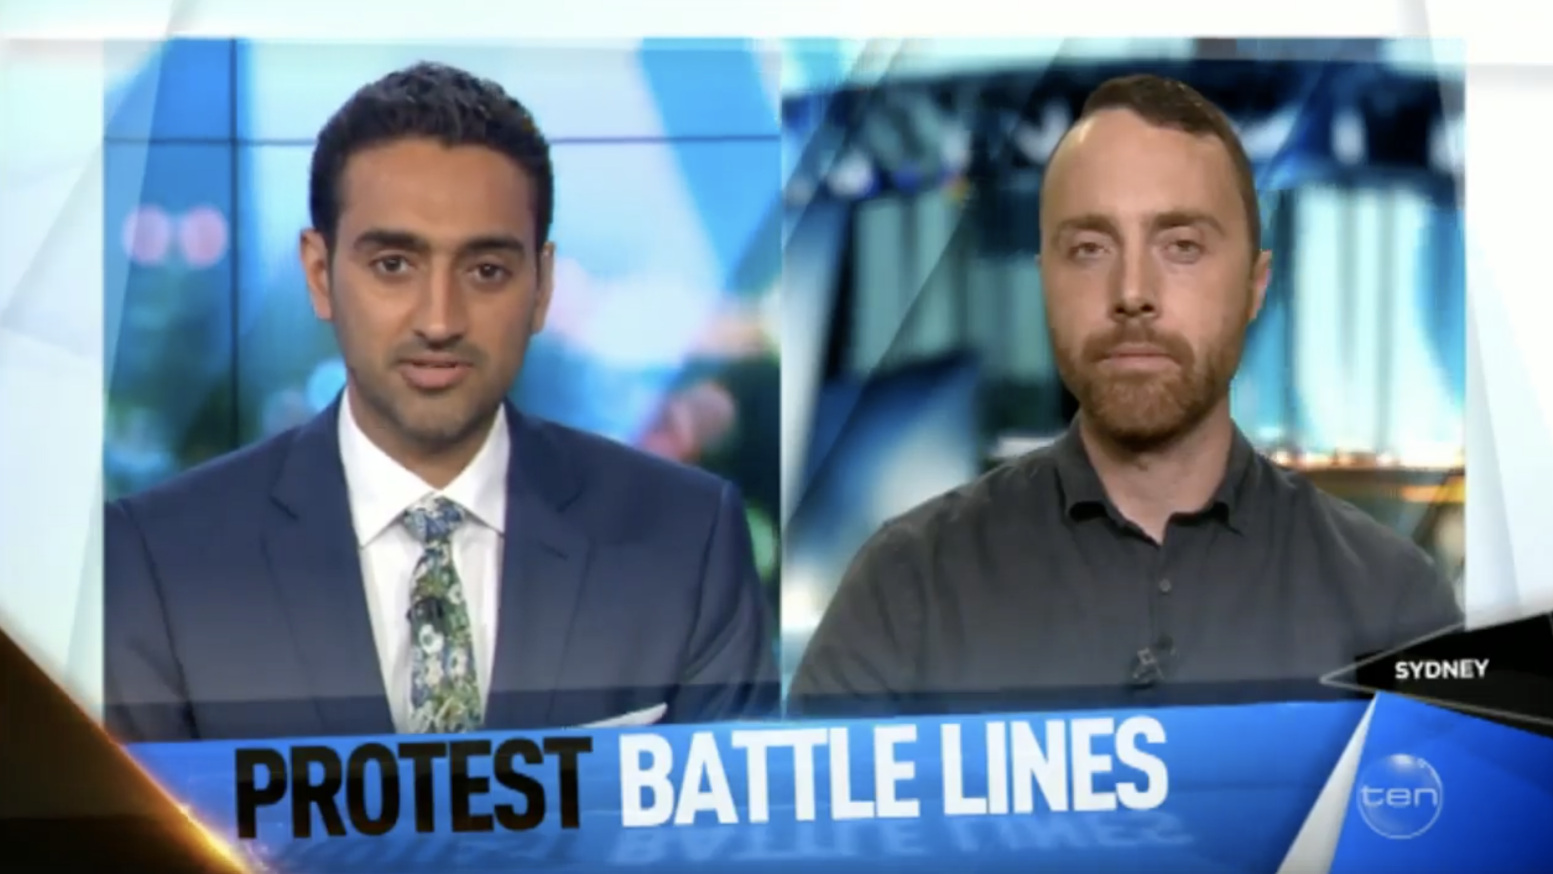 James Fry on Channel Ten's The Project TV discussing extremism with Waleed Aly Credit: Channel Ten